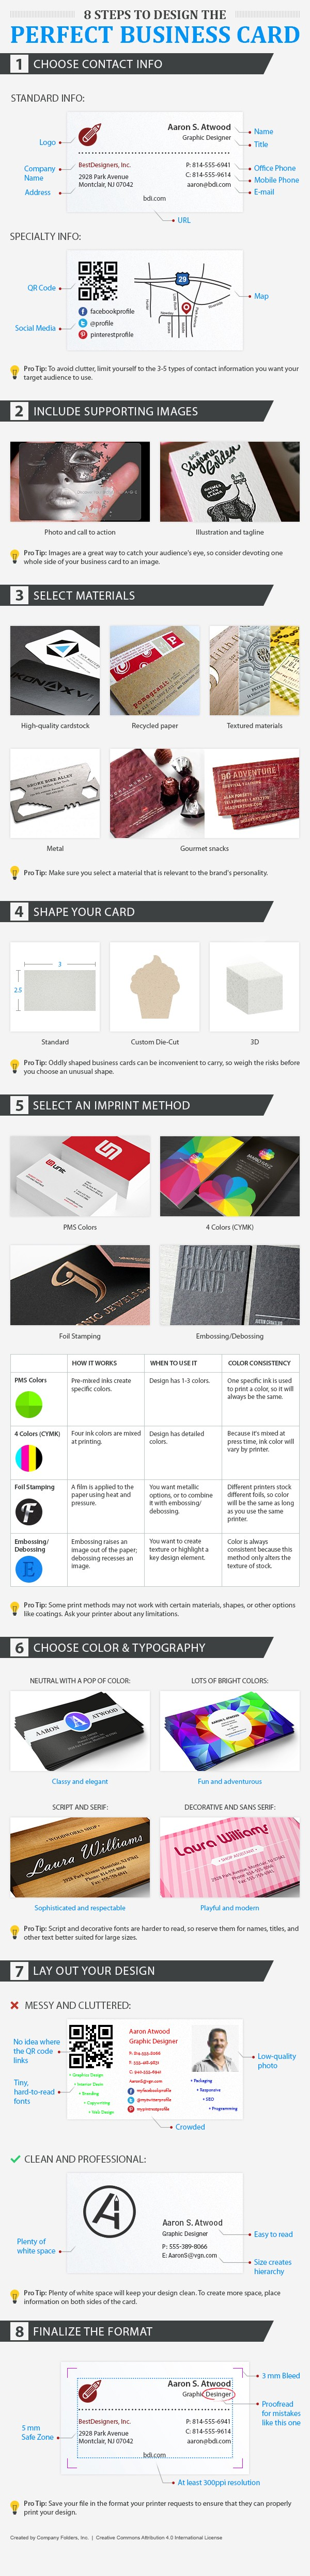 12 brilliant business card design ideas company folders inc medium catch a glimpse of the other 11 pro tips for designing the perfect business card you can also download our super helpful graphic for free to make reheart Gallery